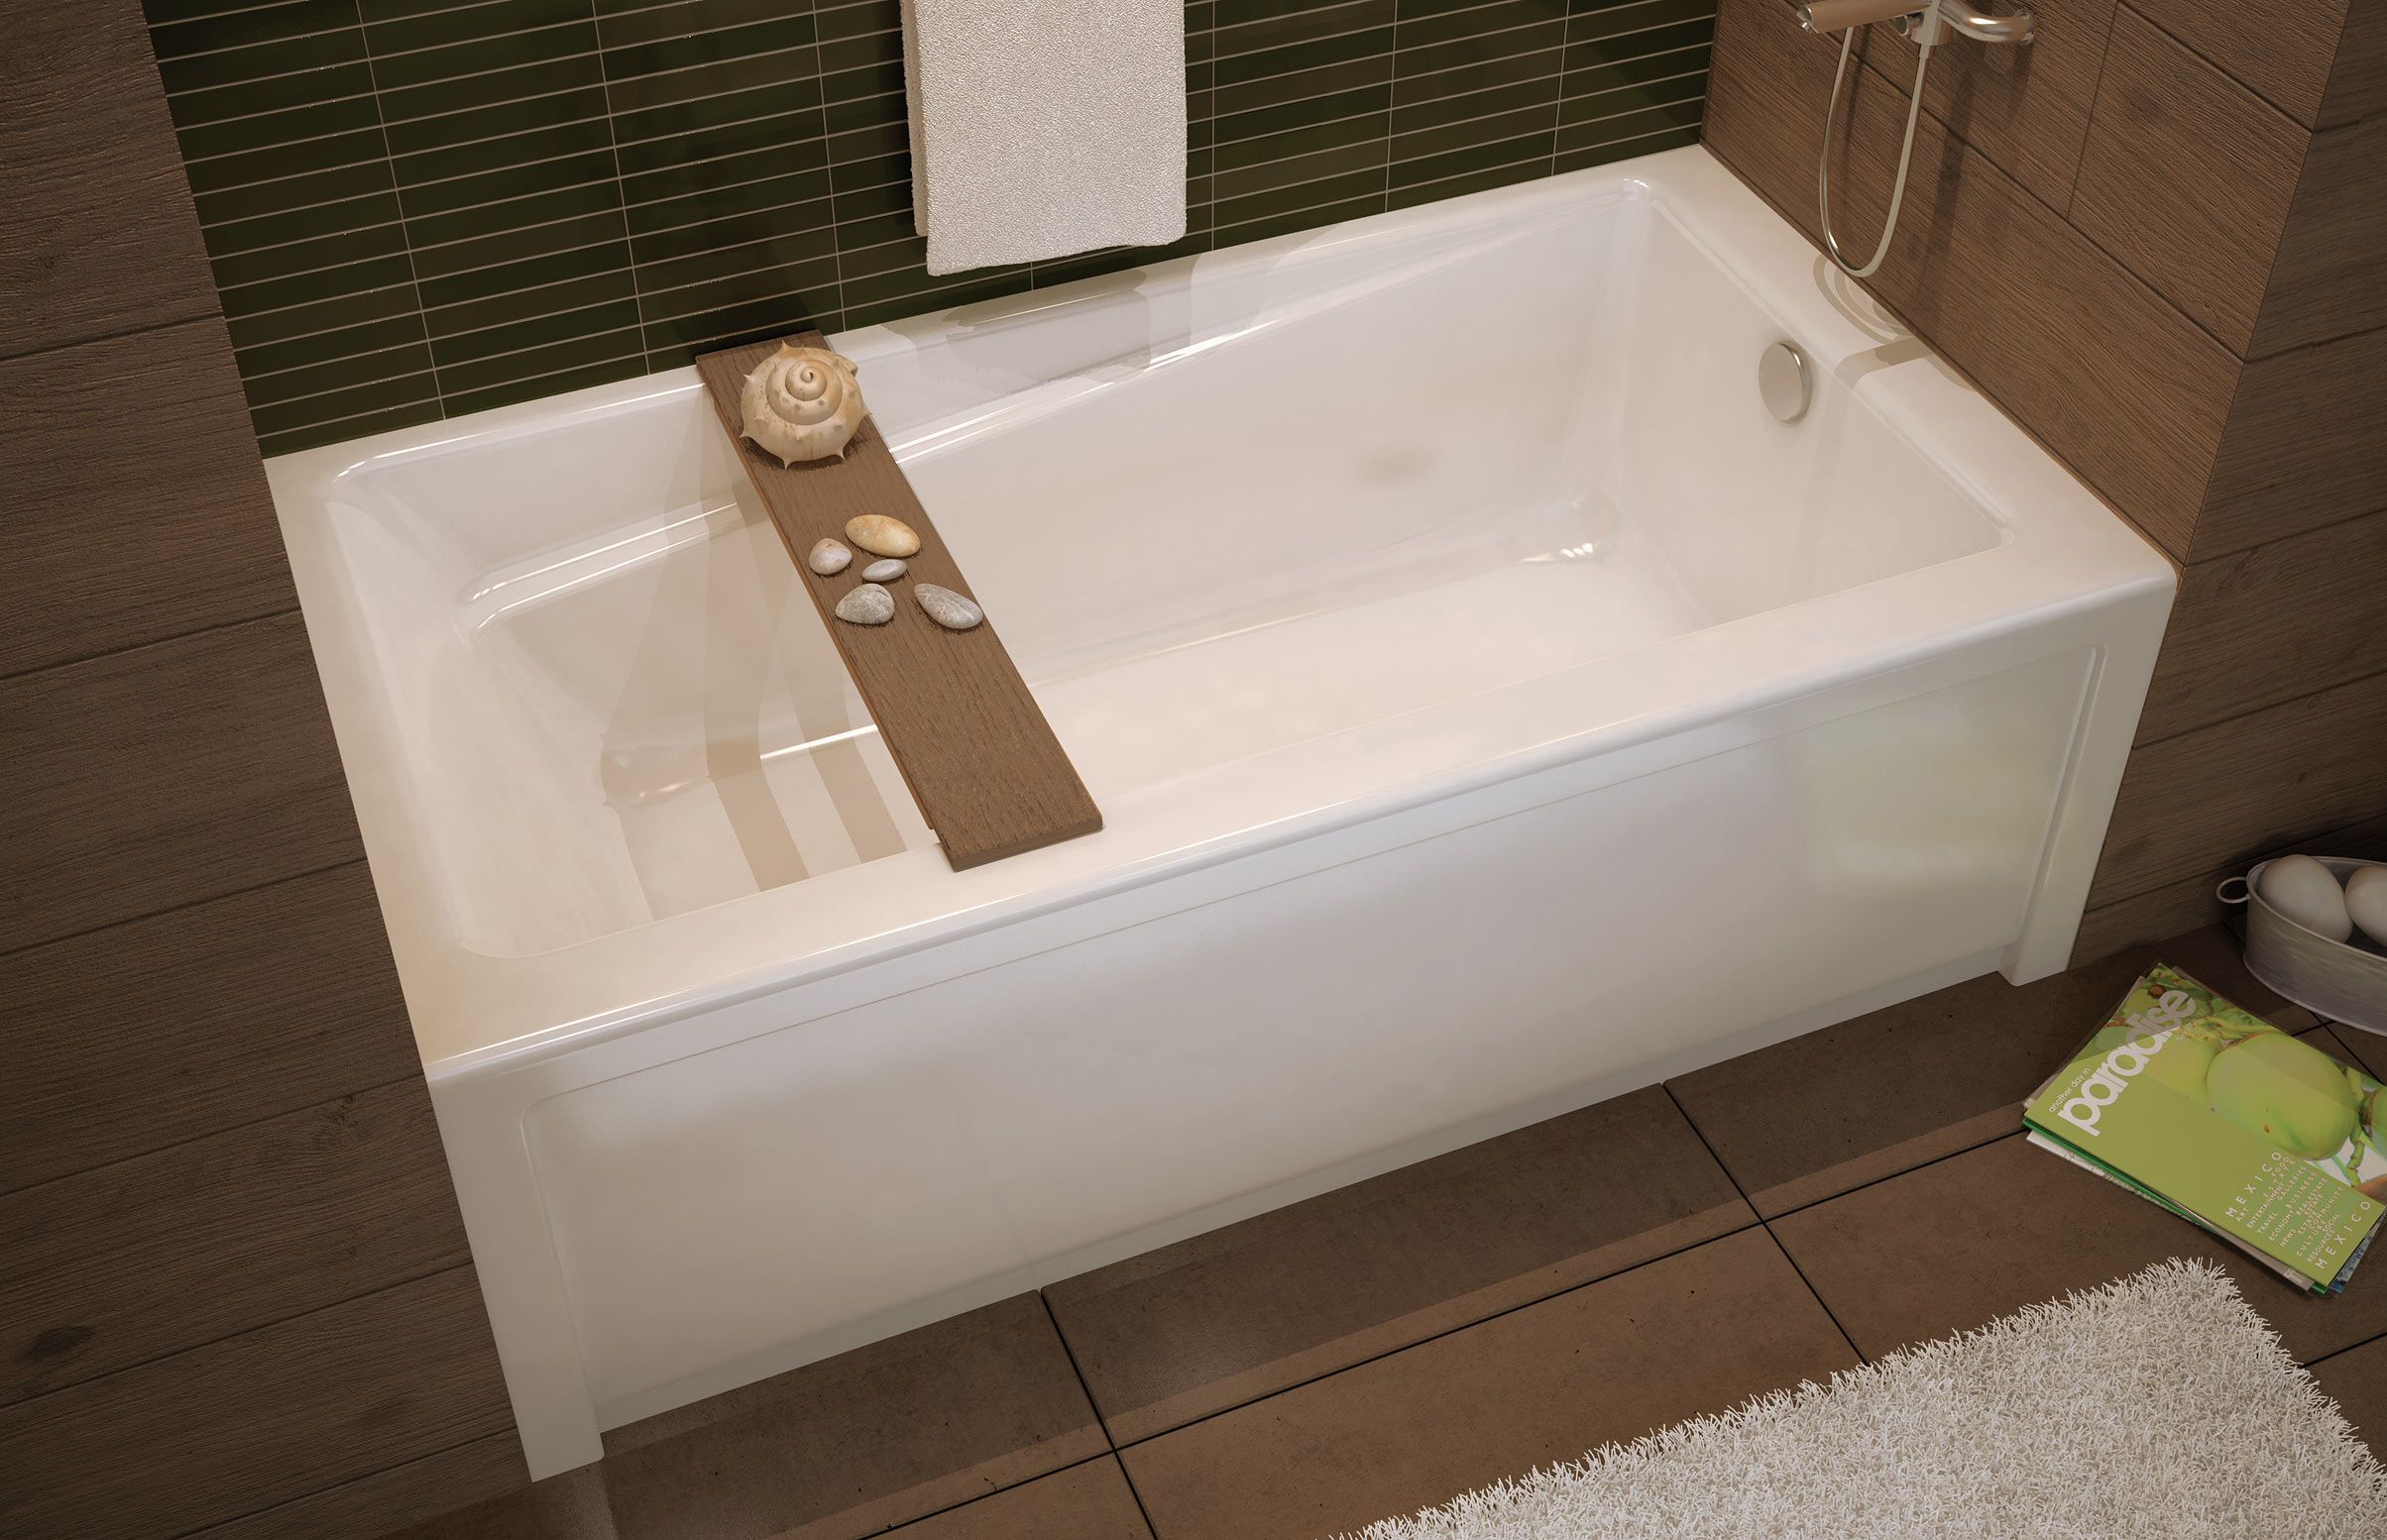 New Town 6032 Alcove Or Drop In Bathtub   Advanta By MAAX | Bathroom |  Pinterest | Alcove, Bathtubs And Upstairs Bathrooms